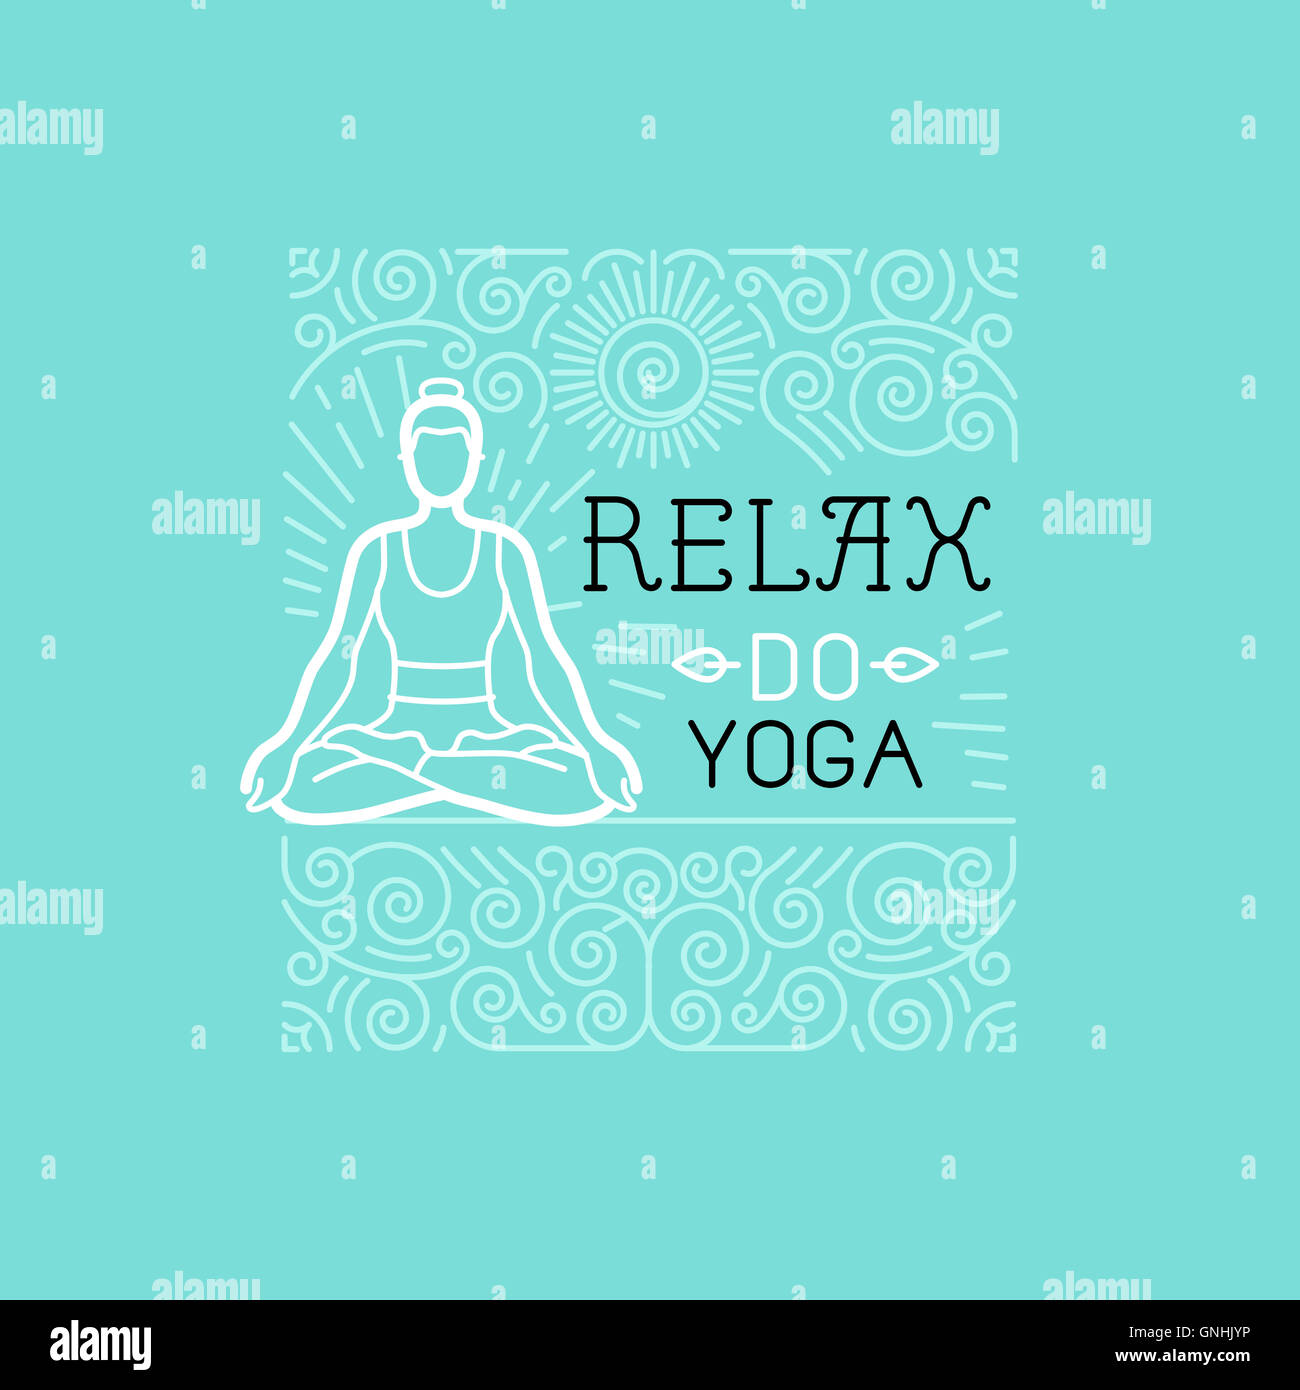 Yoga and sport motivation banner and poster in trendy linear